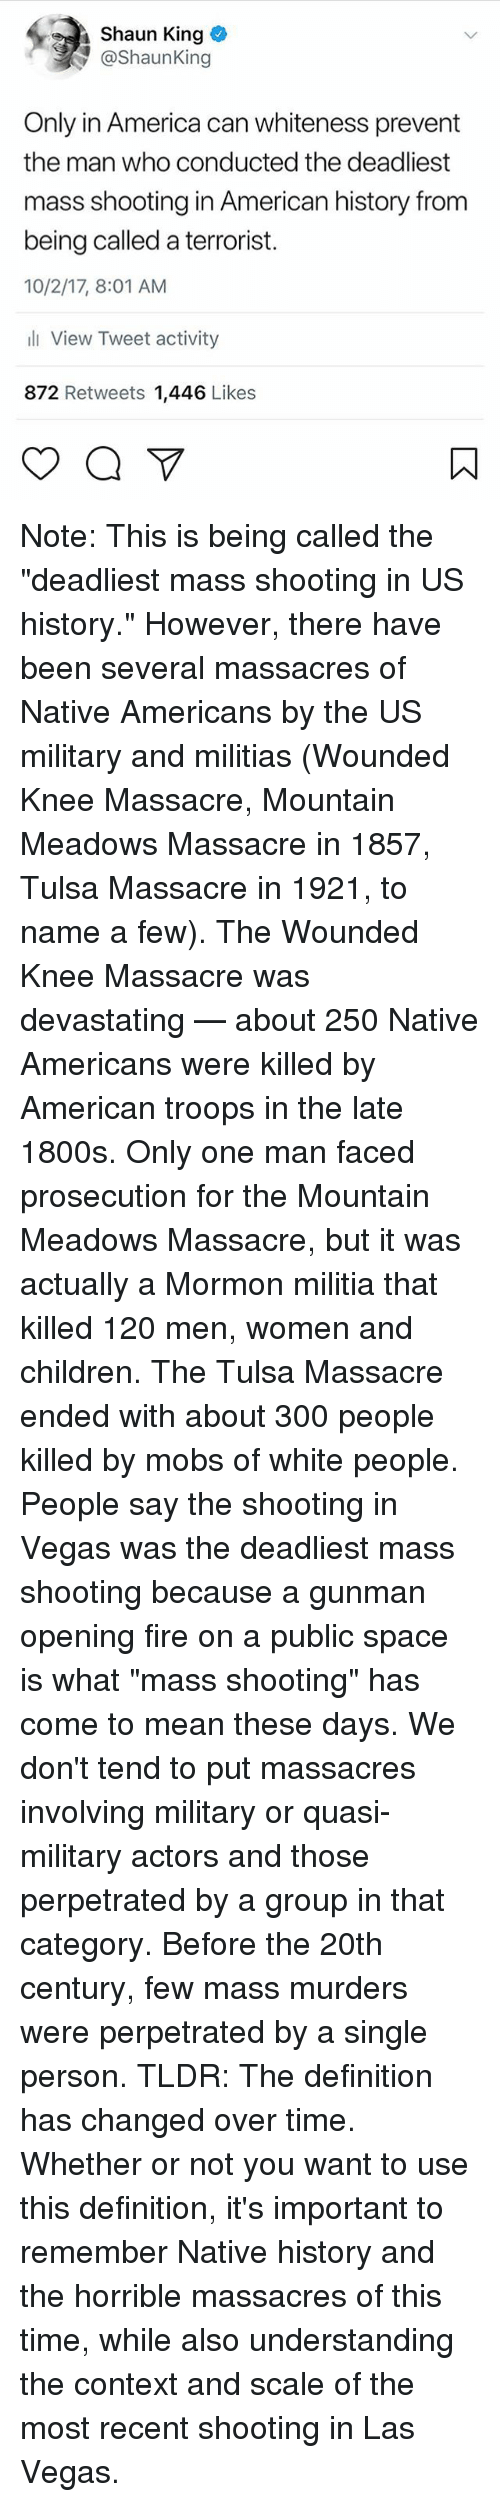 """tldr: Shaun King  @ShaunKing  Only in America can whiteness prevent  the man who conducted the deadliest  mass shooting in American history from  being called a terrorist.  10/2/17, 8:01 AM  li View Tweet activity  872 Retweets 1,446 Likes Note: This is being called the """"deadliest mass shooting in US history."""" However, there have been several massacres of Native Americans by the US military and militias (Wounded Knee Massacre, Mountain Meadows Massacre in 1857, Tulsa Massacre in 1921, to name a few). The Wounded Knee Massacre was devastating — about 250 Native Americans were killed by American troops in the late 1800s. Only one man faced prosecution for the Mountain Meadows Massacre, but it was actually a Mormon militia that killed 120 men, women and children. The Tulsa Massacre ended with about 300 people killed by mobs of white people. People say the shooting in Vegas was the deadliest mass shooting because a gunman opening fire on a public space is what """"mass shooting"""" has come to mean these days. We don't tend to put massacres involving military or quasi-military actors and those perpetrated by a group in that category. Before the 20th century, few mass murders were perpetrated by a single person. TLDR: The definition has changed over time. Whether or not you want to use this definition, it's important to remember Native history and the horrible massacres of this time, while also understanding the context and scale of the most recent shooting in Las Vegas."""